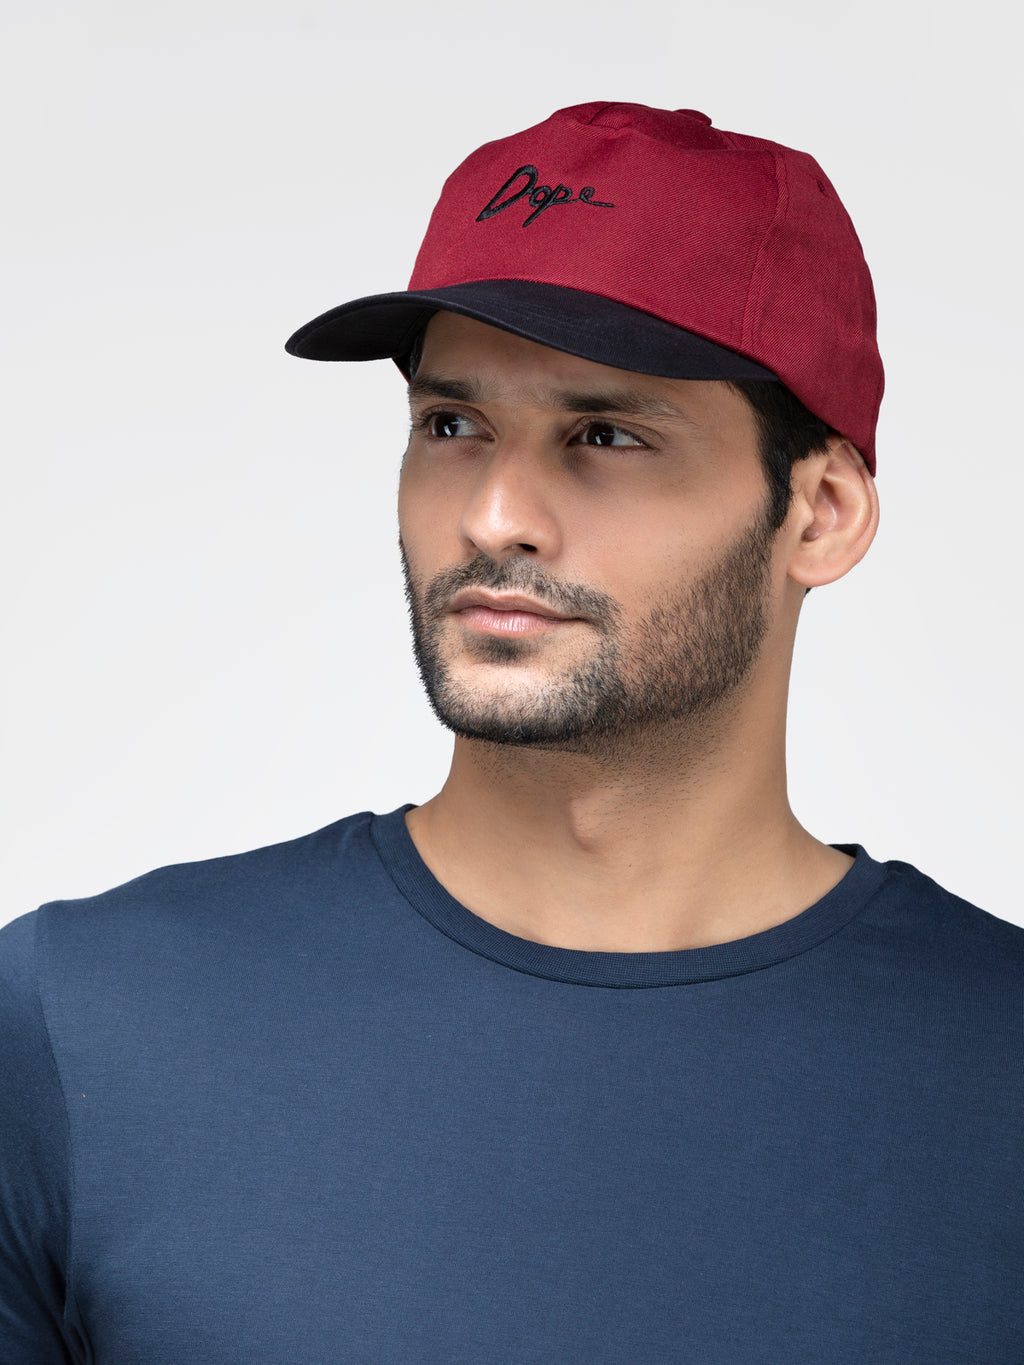 Blueberry red color snapback cap